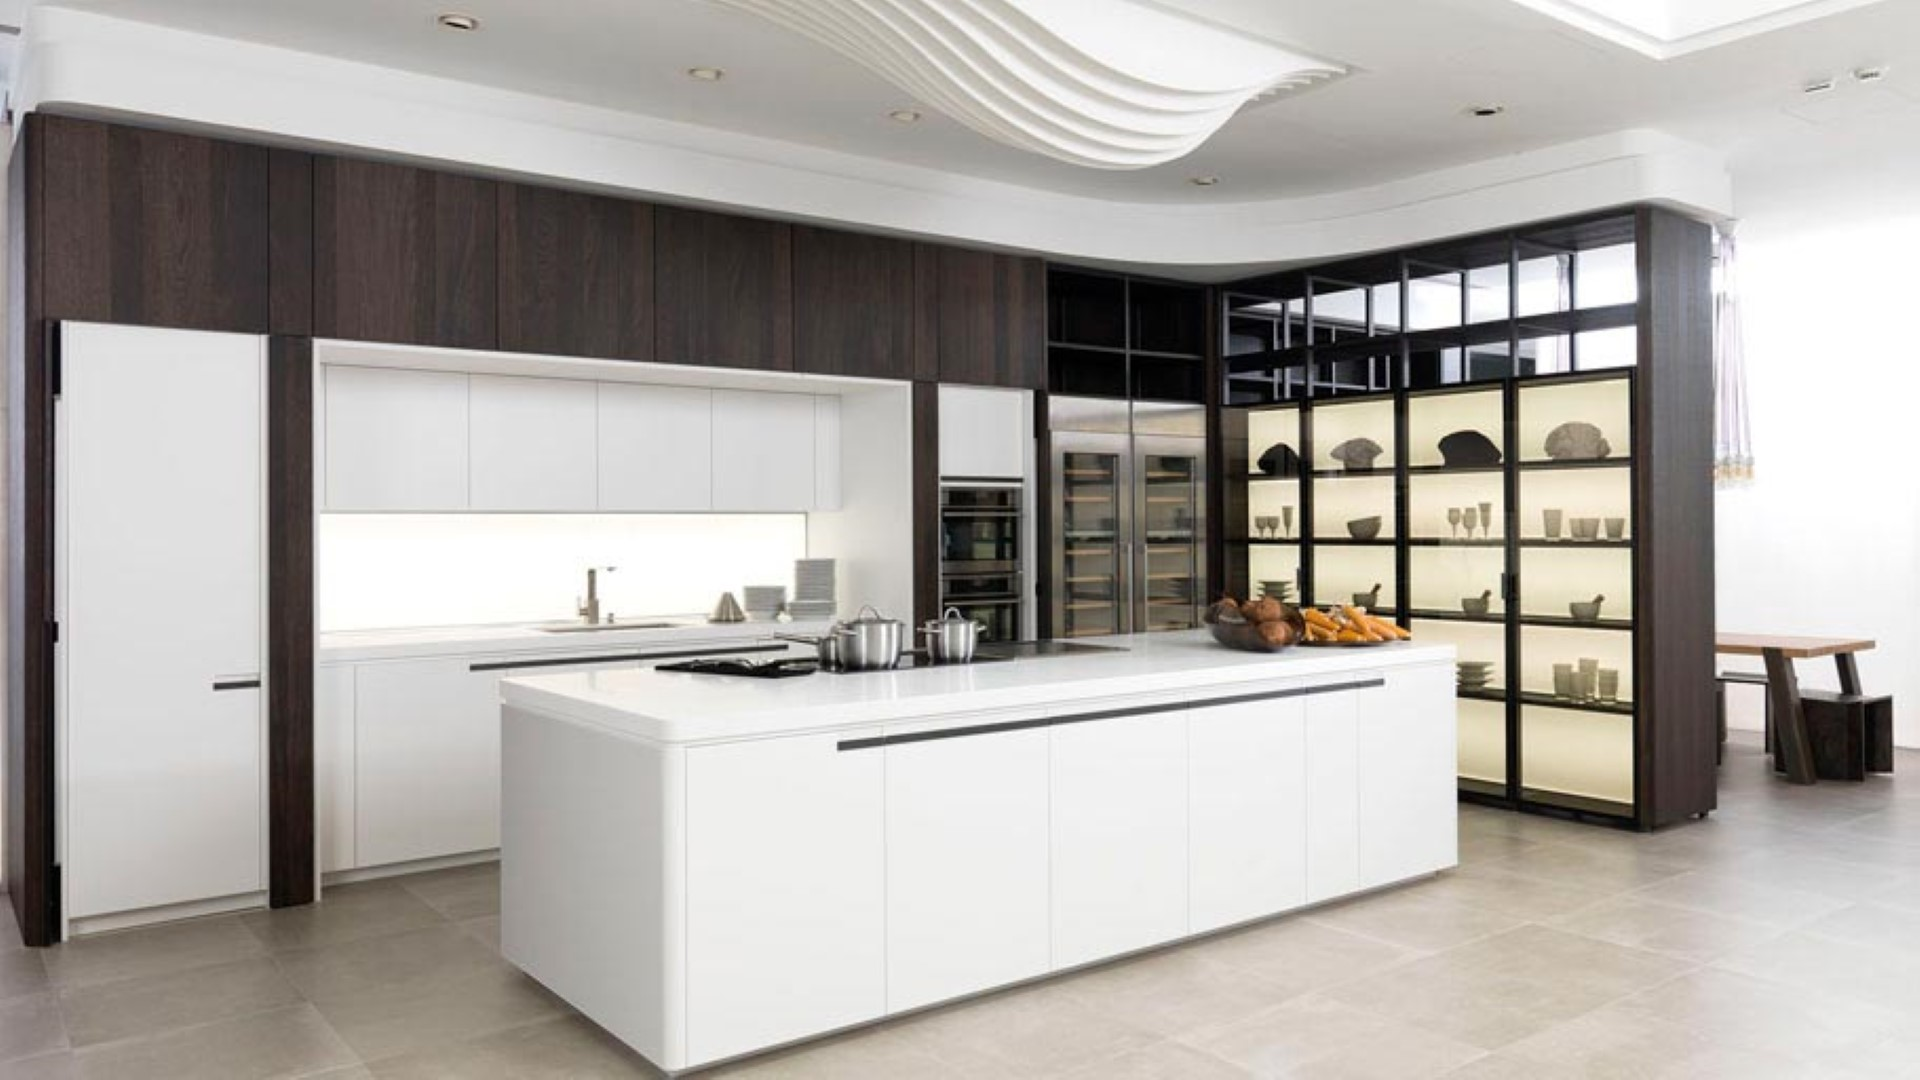 Cocinas-blancas-tendencias-Porcelanosa-kitchens-01 (Large)